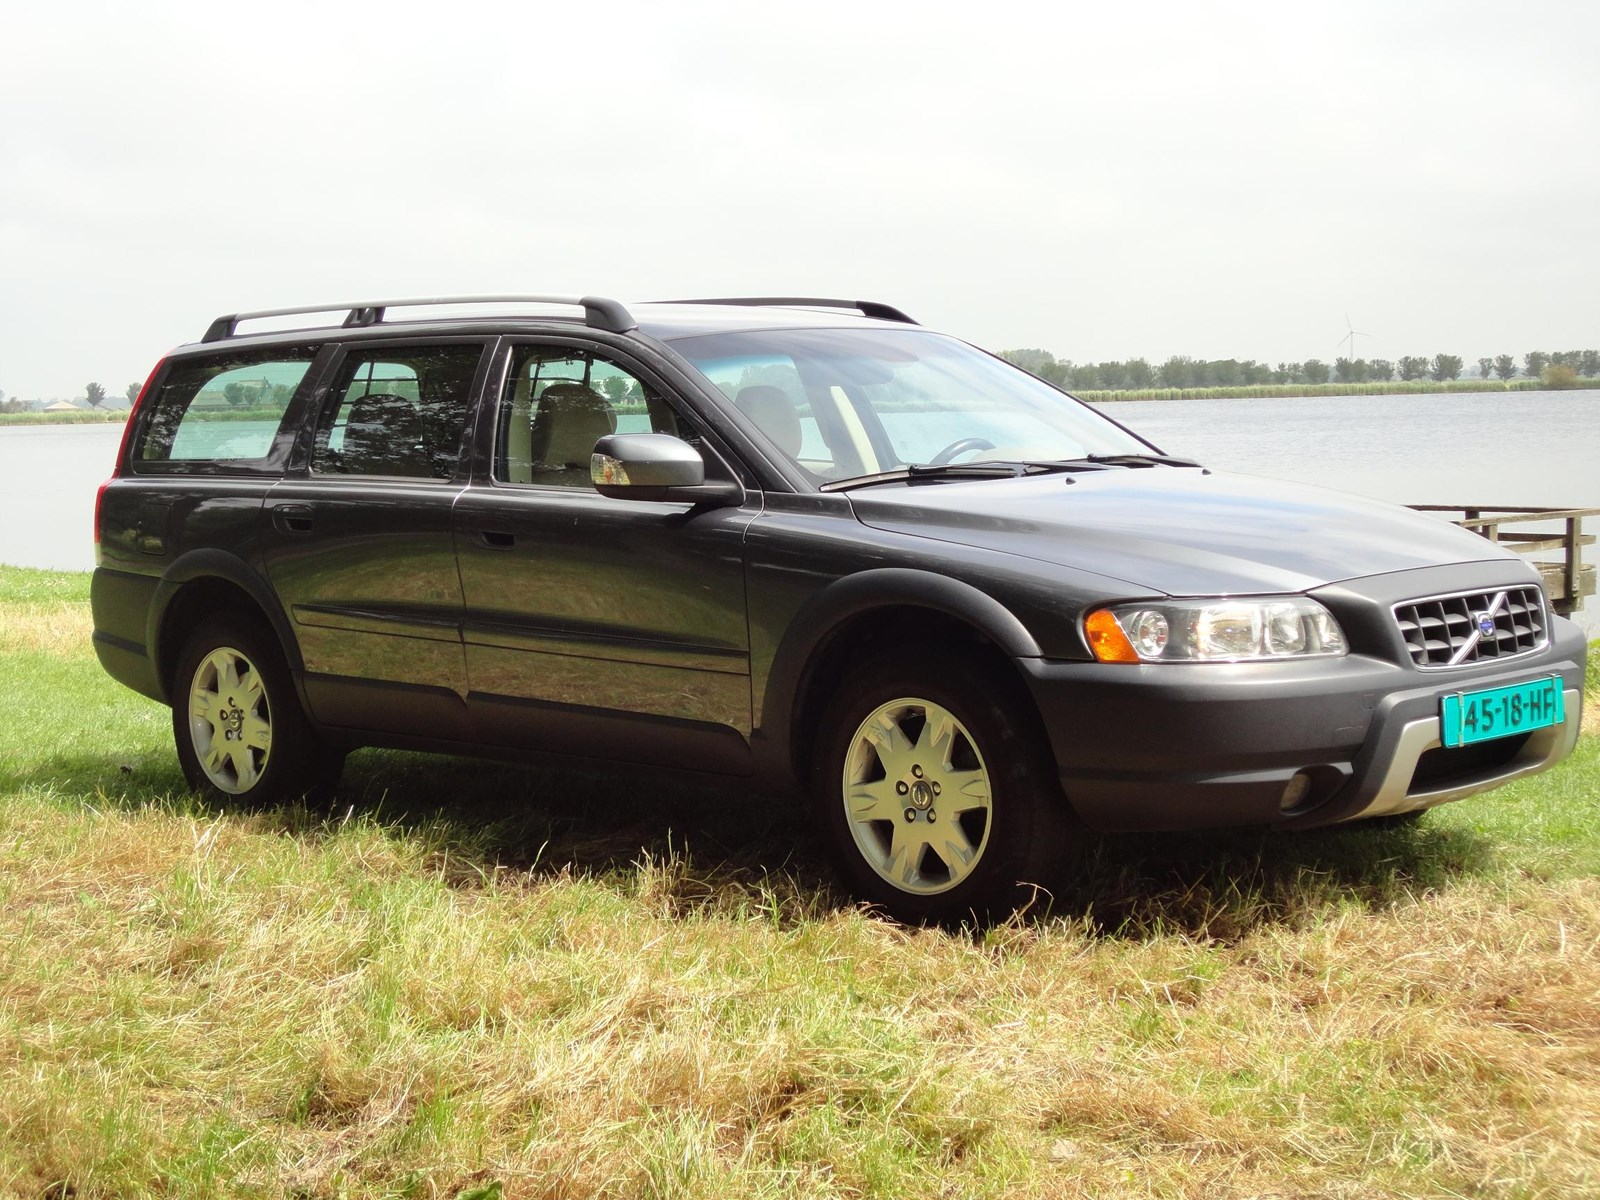 testverslag volvo xc70 d5 185 pk four c gebruikte volvo test. Black Bedroom Furniture Sets. Home Design Ideas